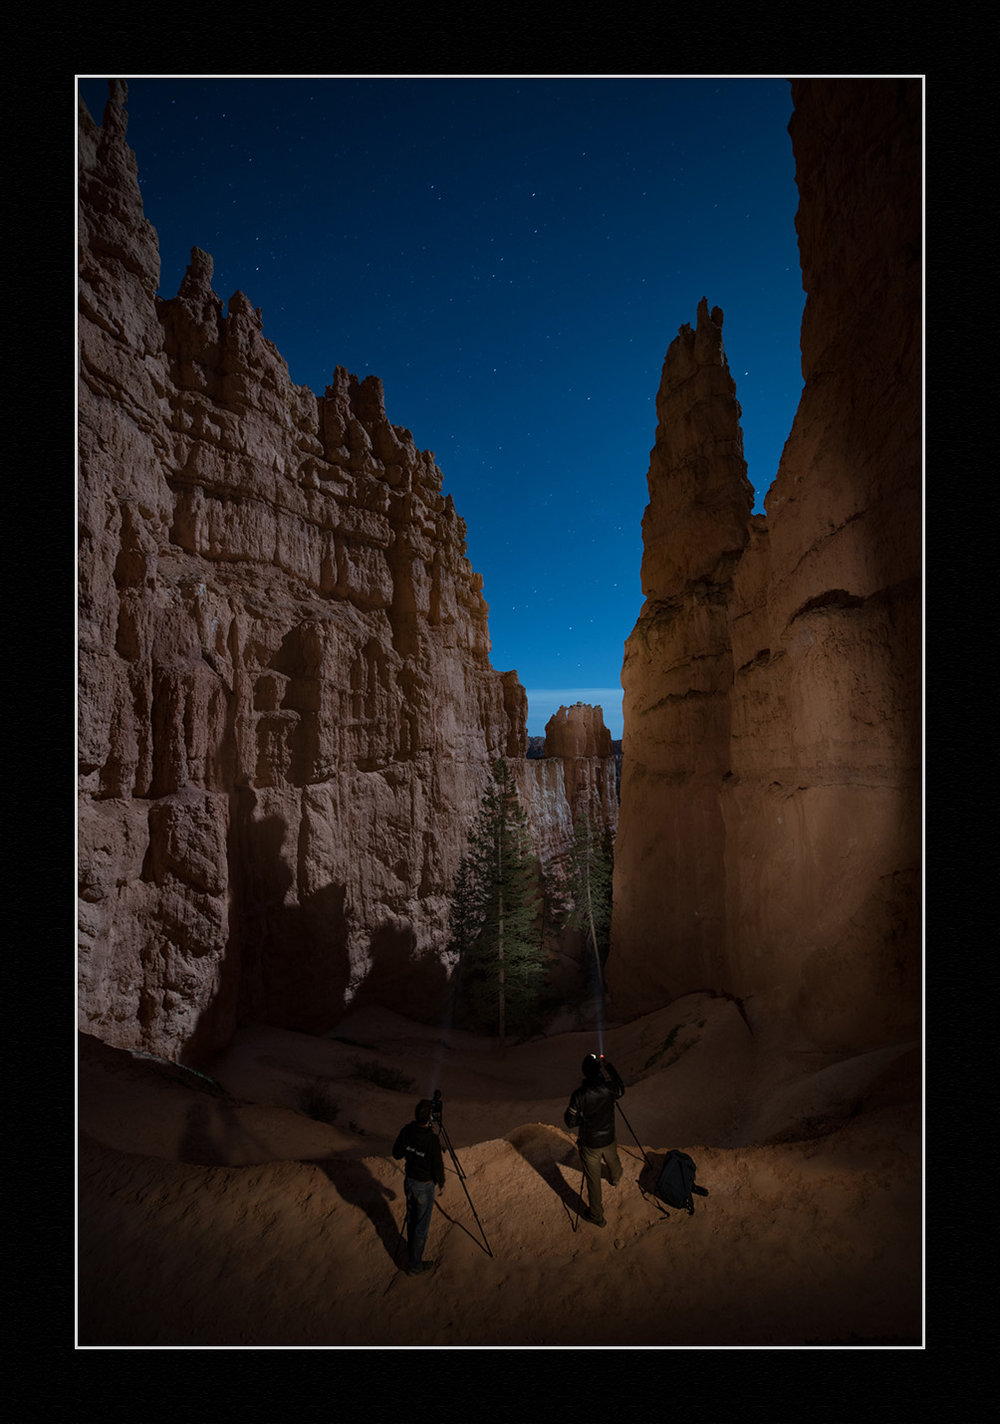 Light painting on the Navajo Loop Trail in Bryce Canyon National Park. 30 seconds, f/4, ISO 400. Nikon D750 with a Zeiss Distagon 15mm f/2.8 lens.